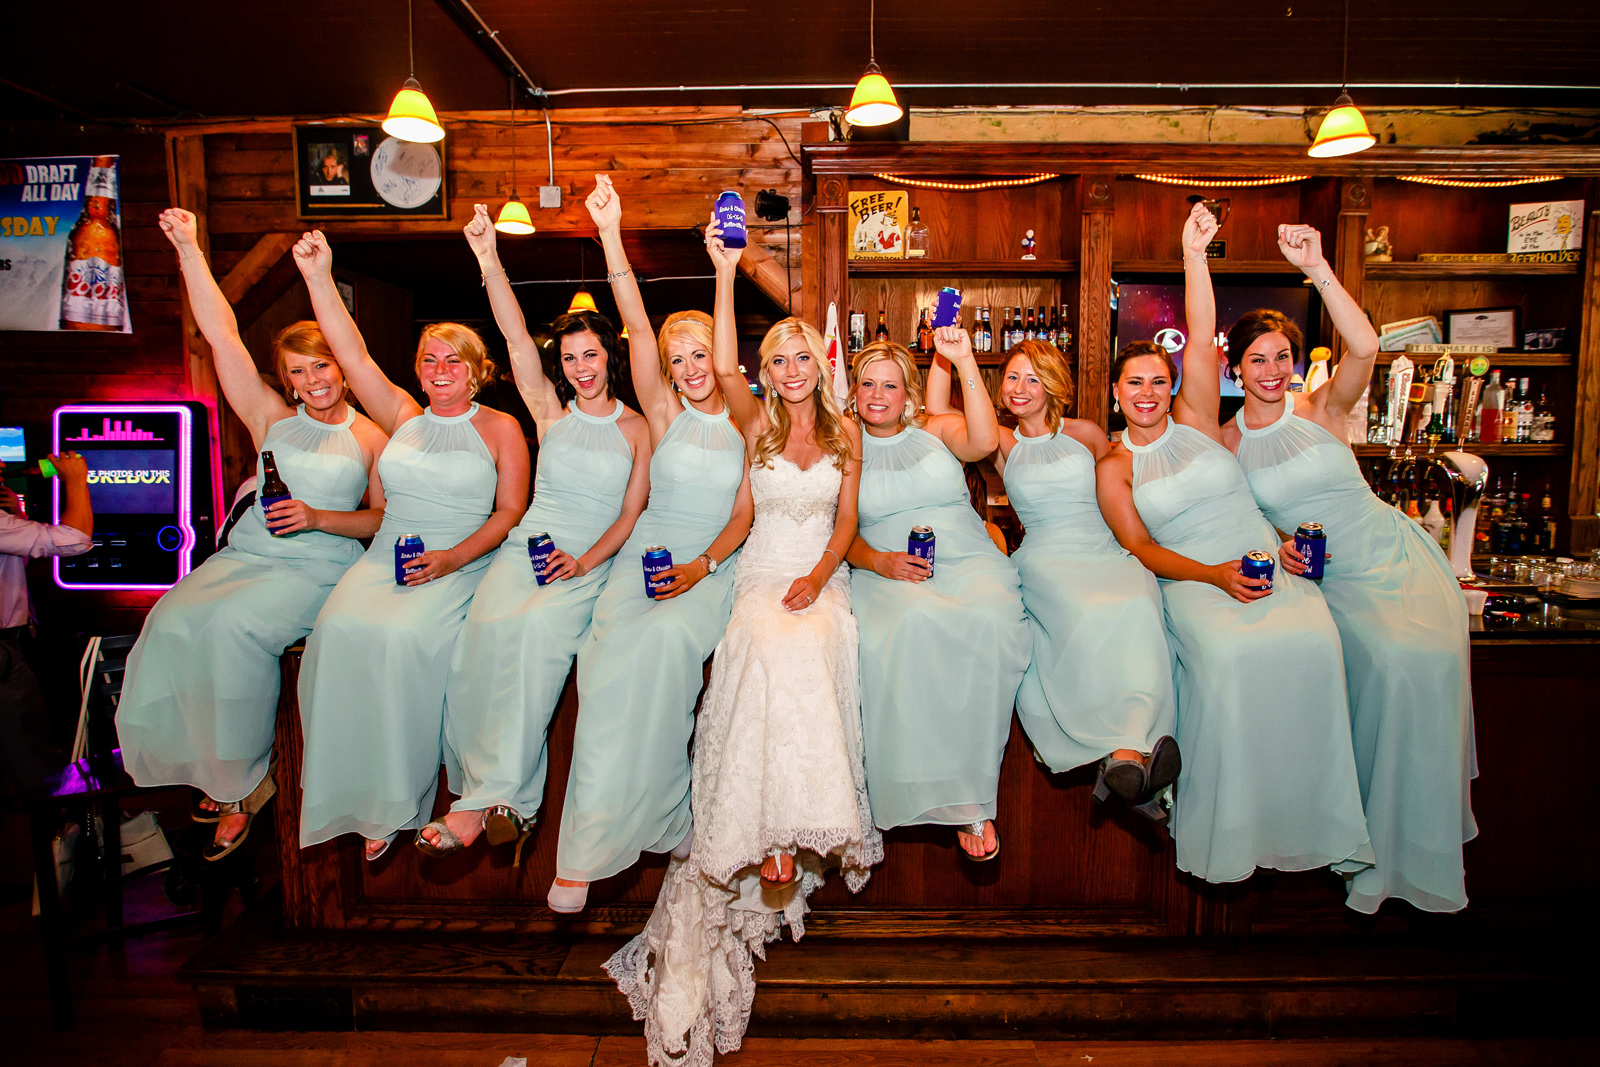 The West End in Millstadt Wedding Party Photos with St. Louis Wedding Photographers by Oldani Photography 3.jpg